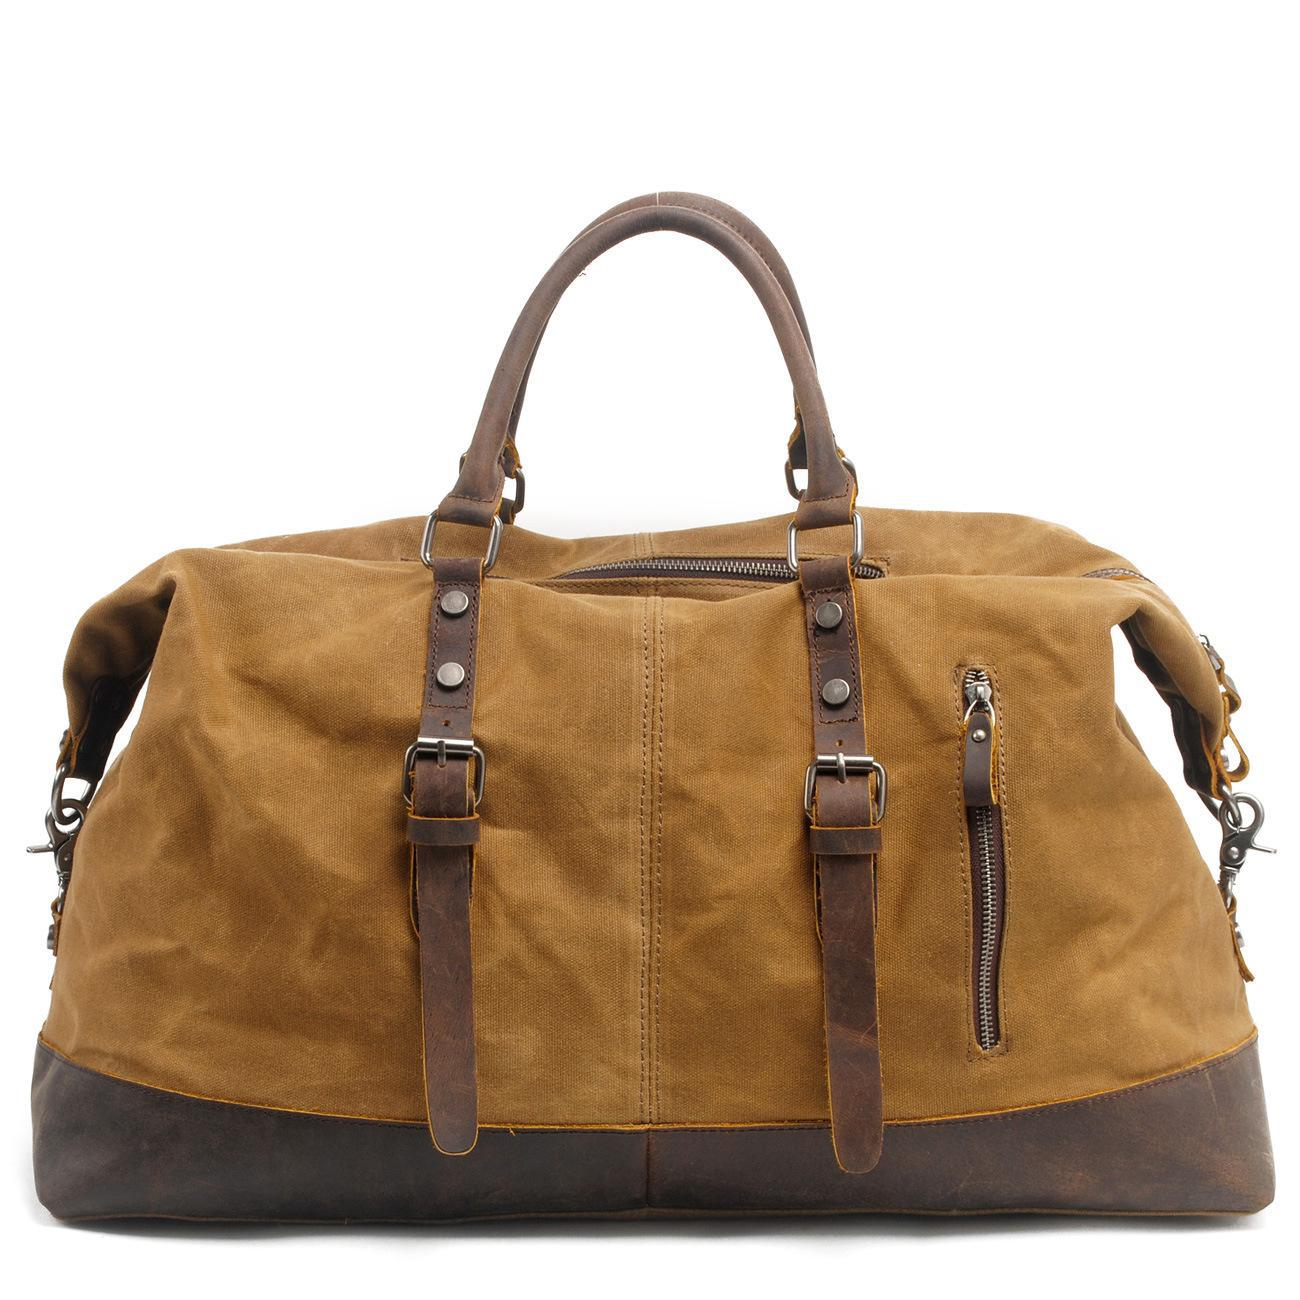 2018 Real Vintage Military Canvas Crazy Horse Leather Men Travel Carry Luggage Duffel Bags Tote Large Weekend Bag Overnight vintage military canvas crazy horse men travel bags carry on luggage bags men duffel bag travel tote large weekend bag overnight